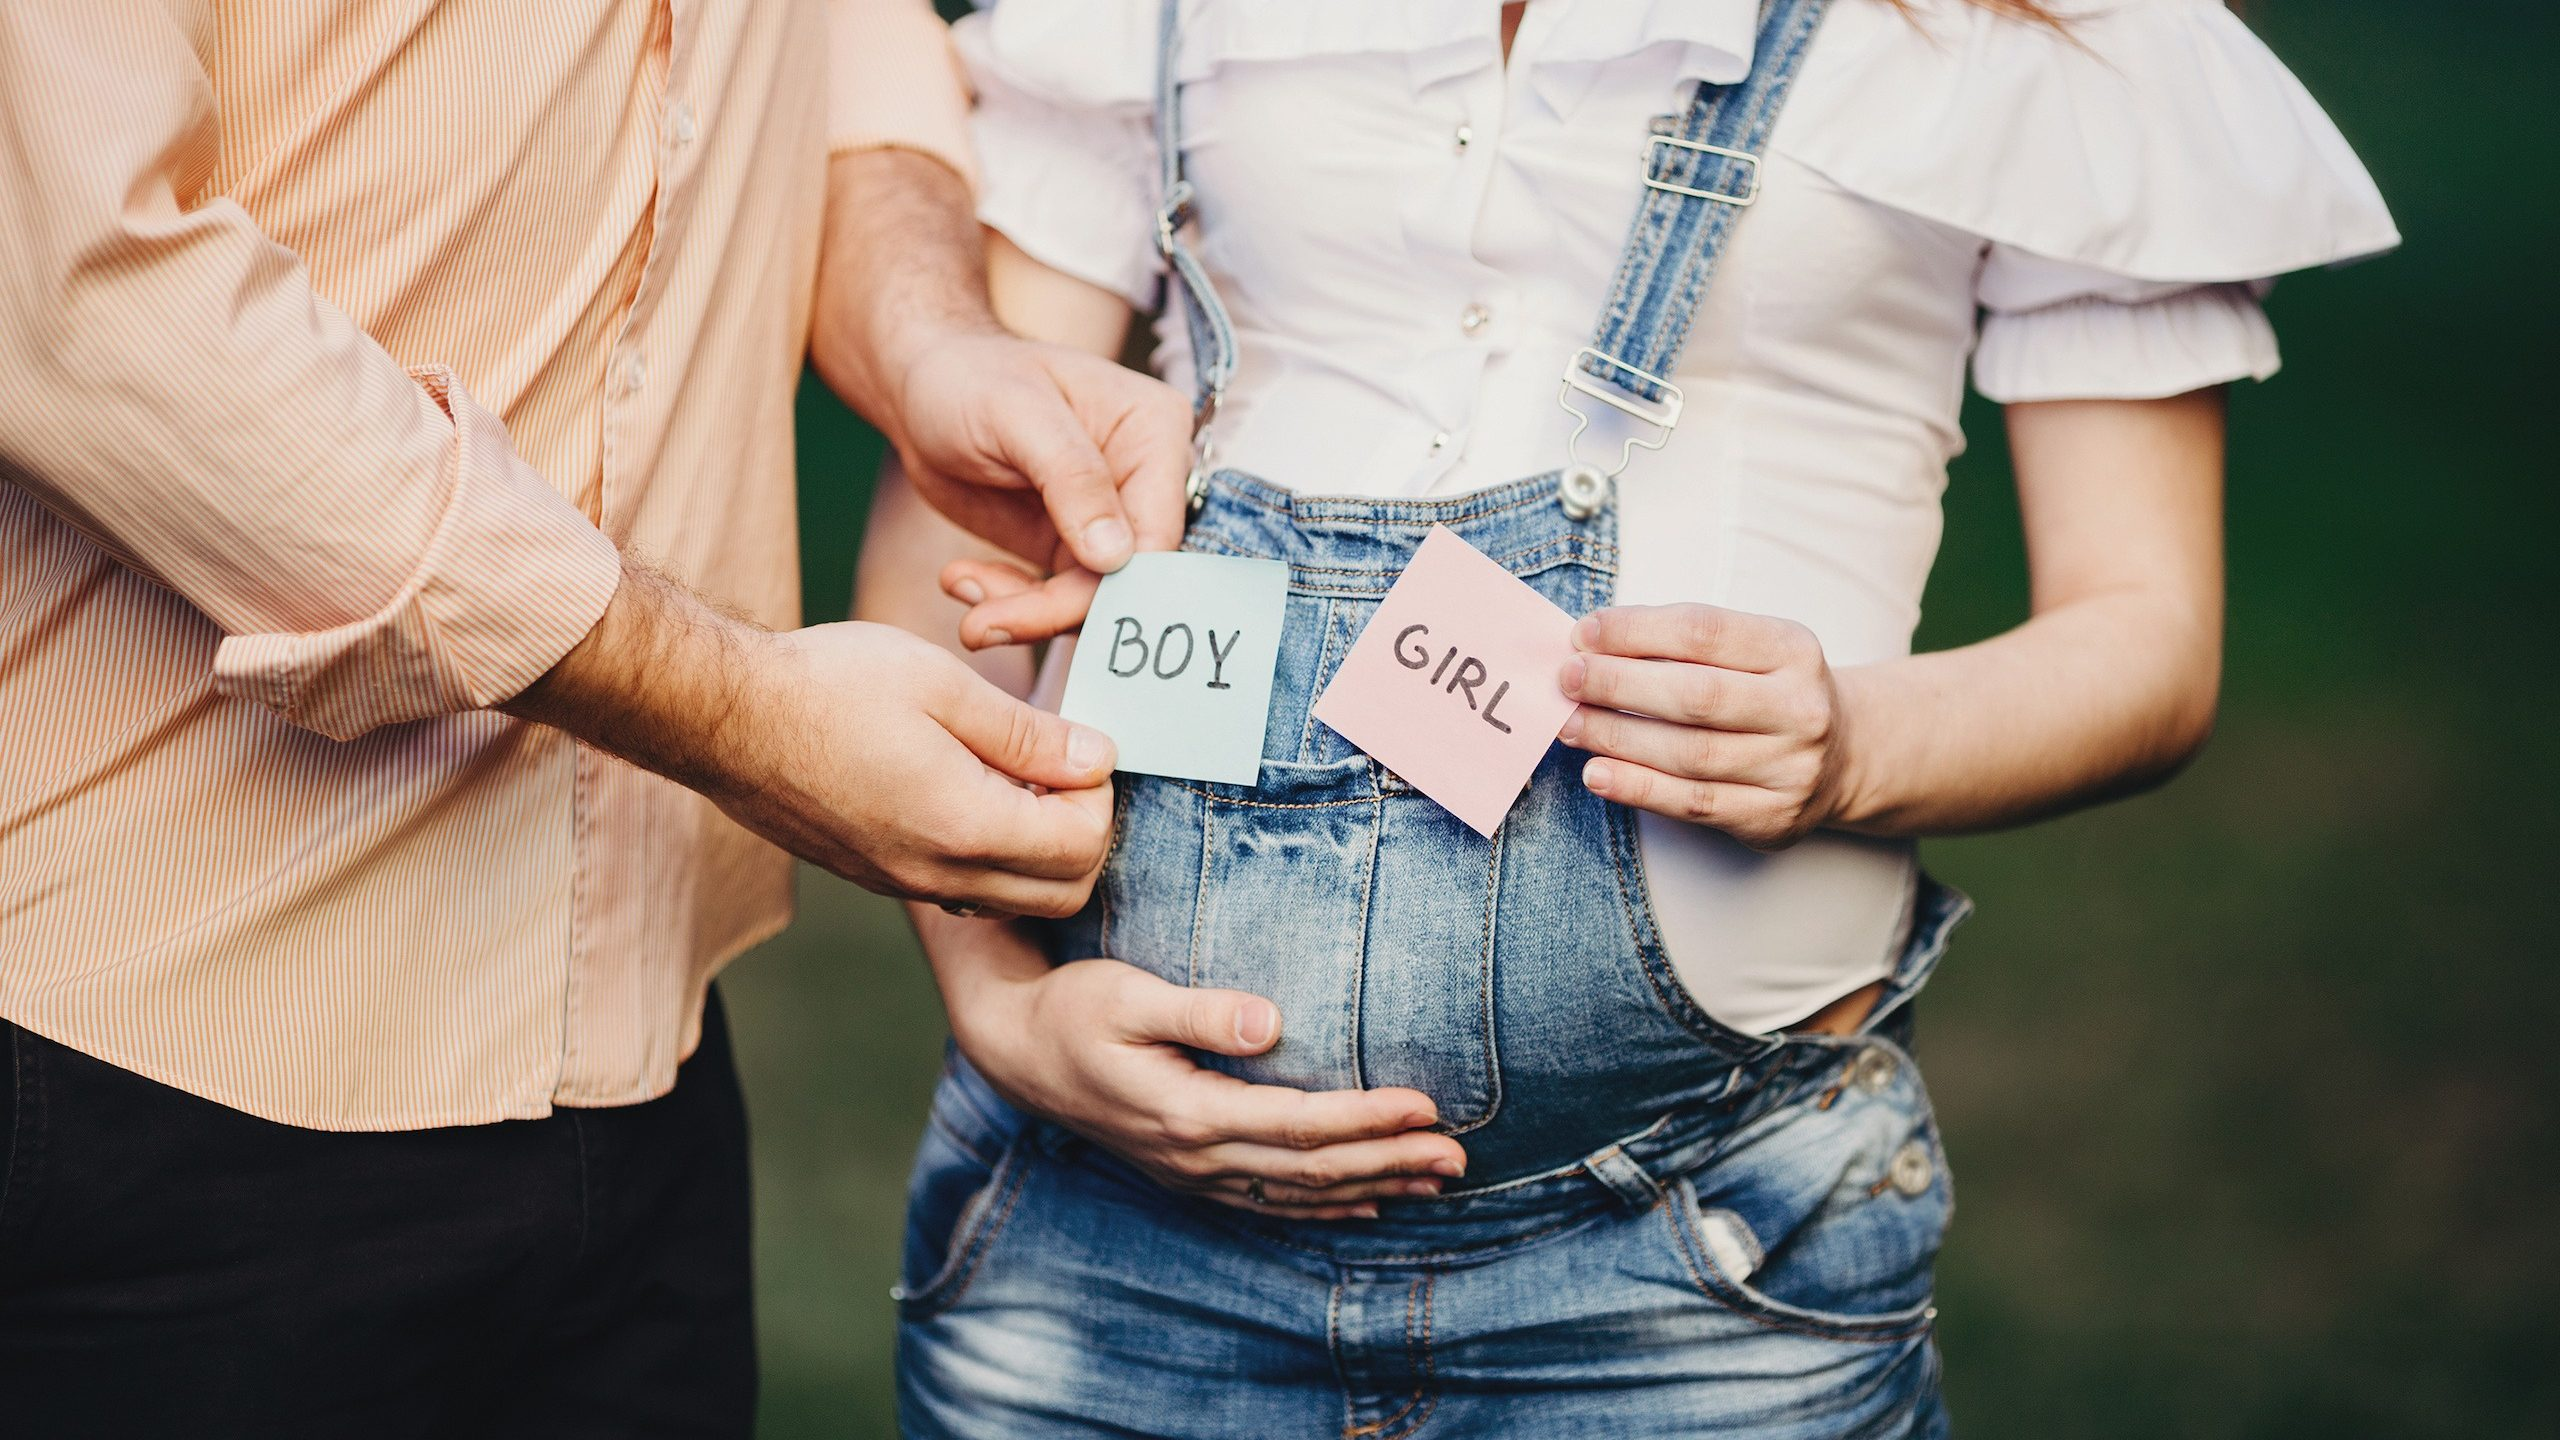 Male and female hands with BOY and GIRL cards near pregnant woman belly. Pregnancy, motherhood, fatherhood, twins, son, daughter concept.